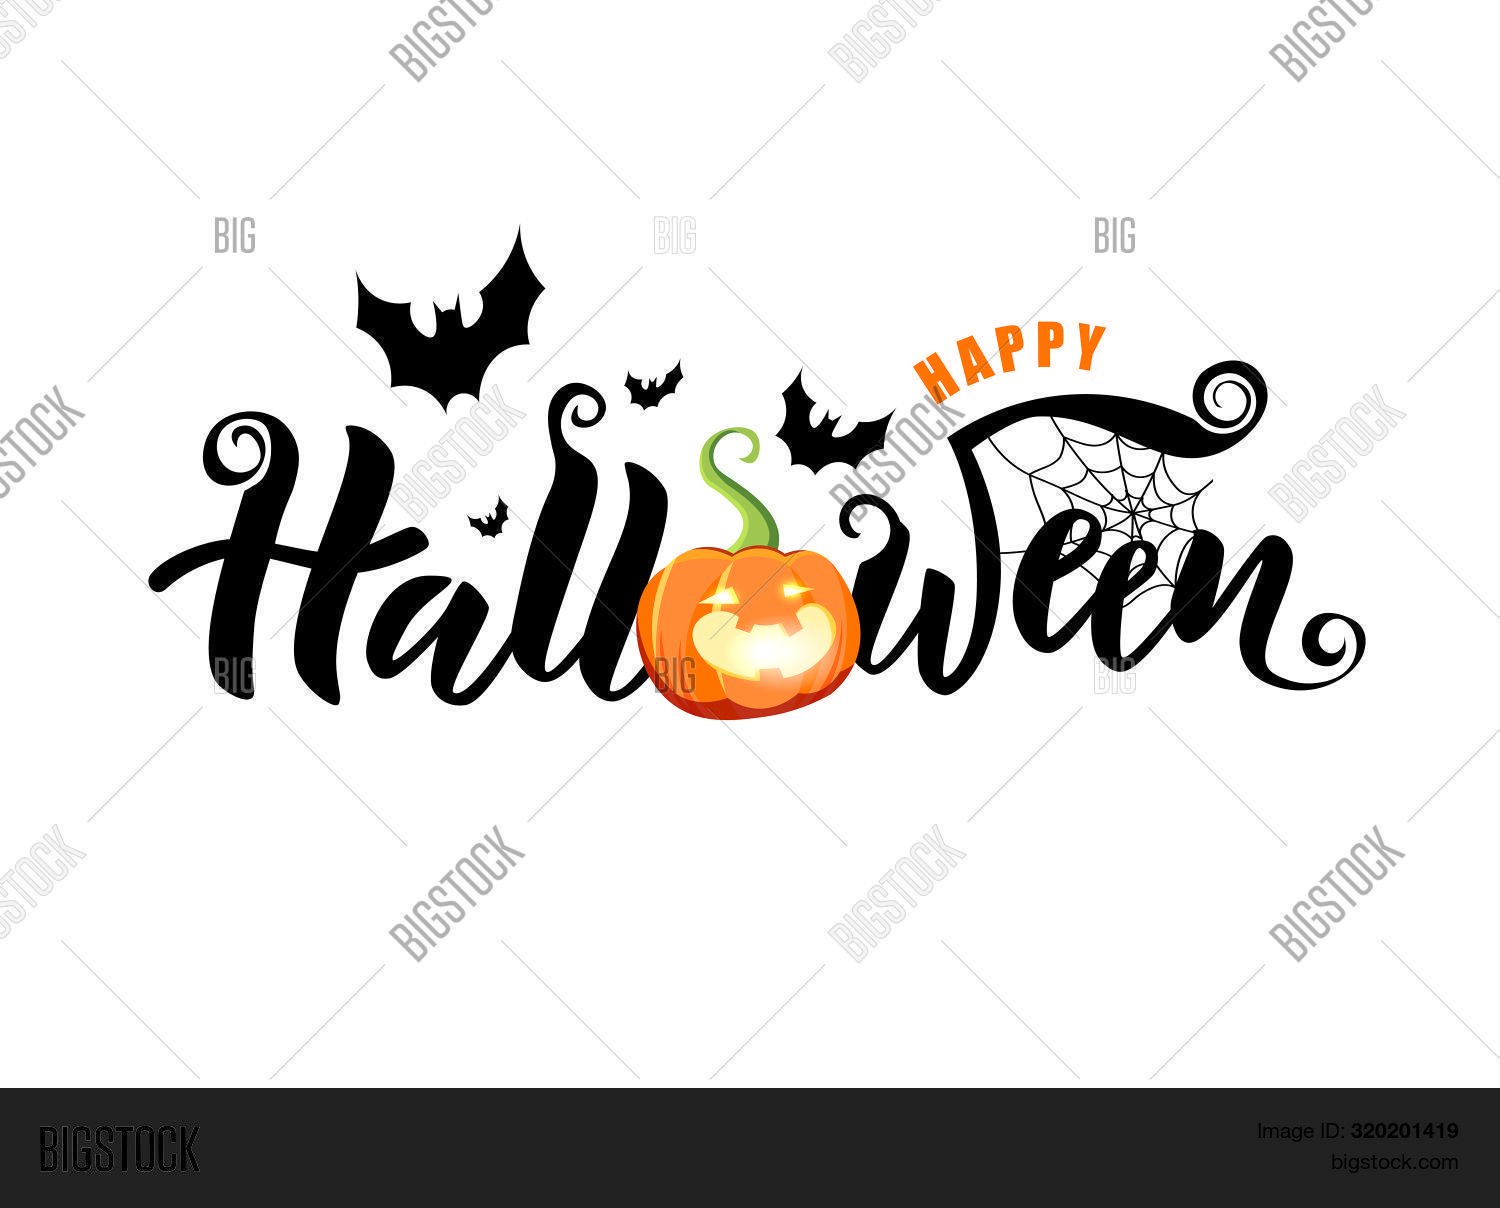 autumn,background,banner,bat,black,calligraphy,card,cartoon,celebration,decoration,design,font,freehand,fun,graphic,greeting,halloween,happy,holiday,horror,illustration,invitation,isolated,label,letter,lettering,mystery,night,october,orange,party,poster,pumpkin,scary,sign,silhouette,spider,spooky,tag,template,text,treats,trick,type,typography,vector,web,word,yellow